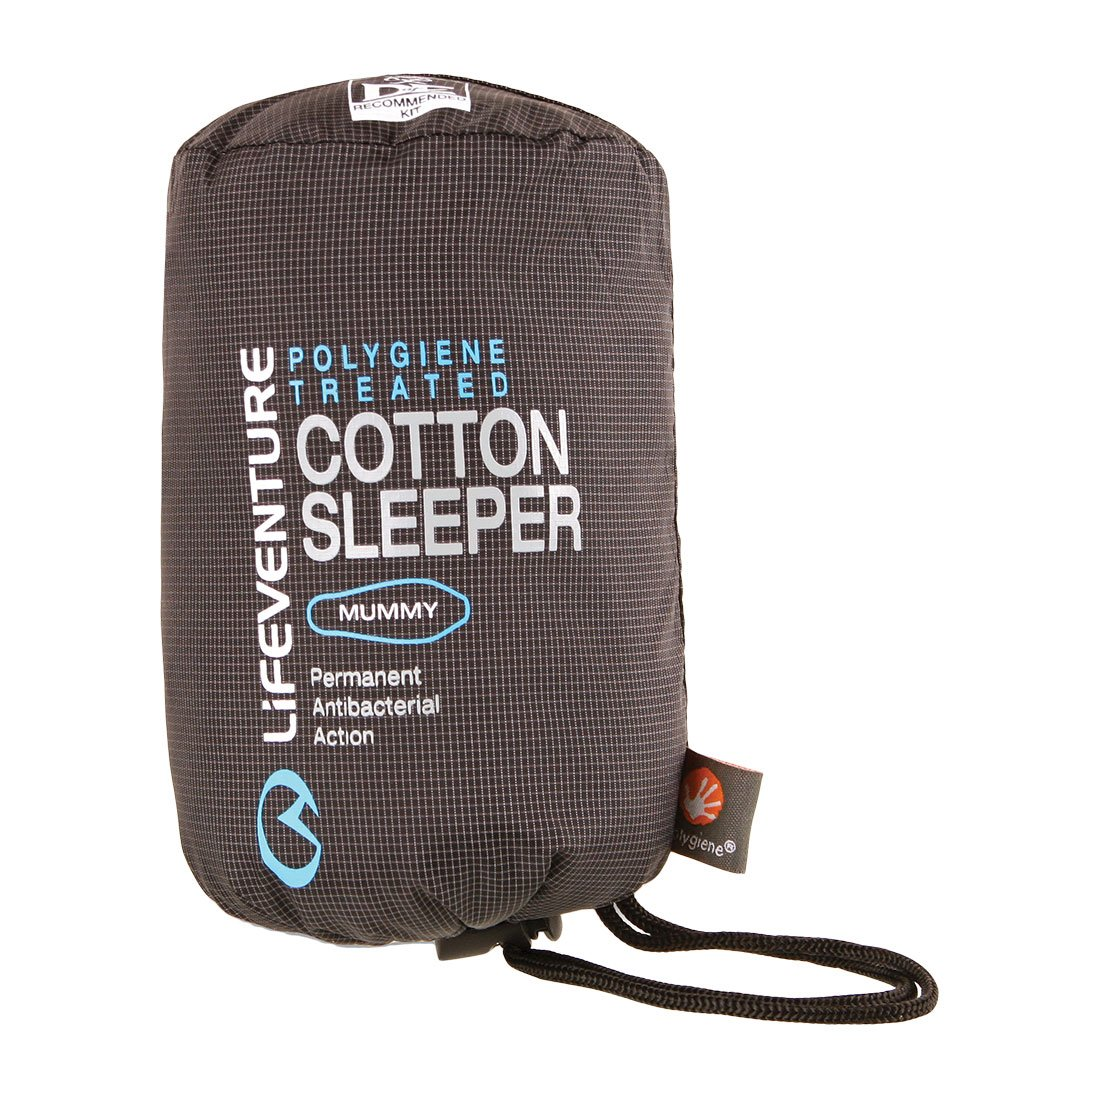 Waterproof Duffle Bags >> AXP Cotton Sleeping Bag Liner | Sleeping Bag Liner | Lifeventure